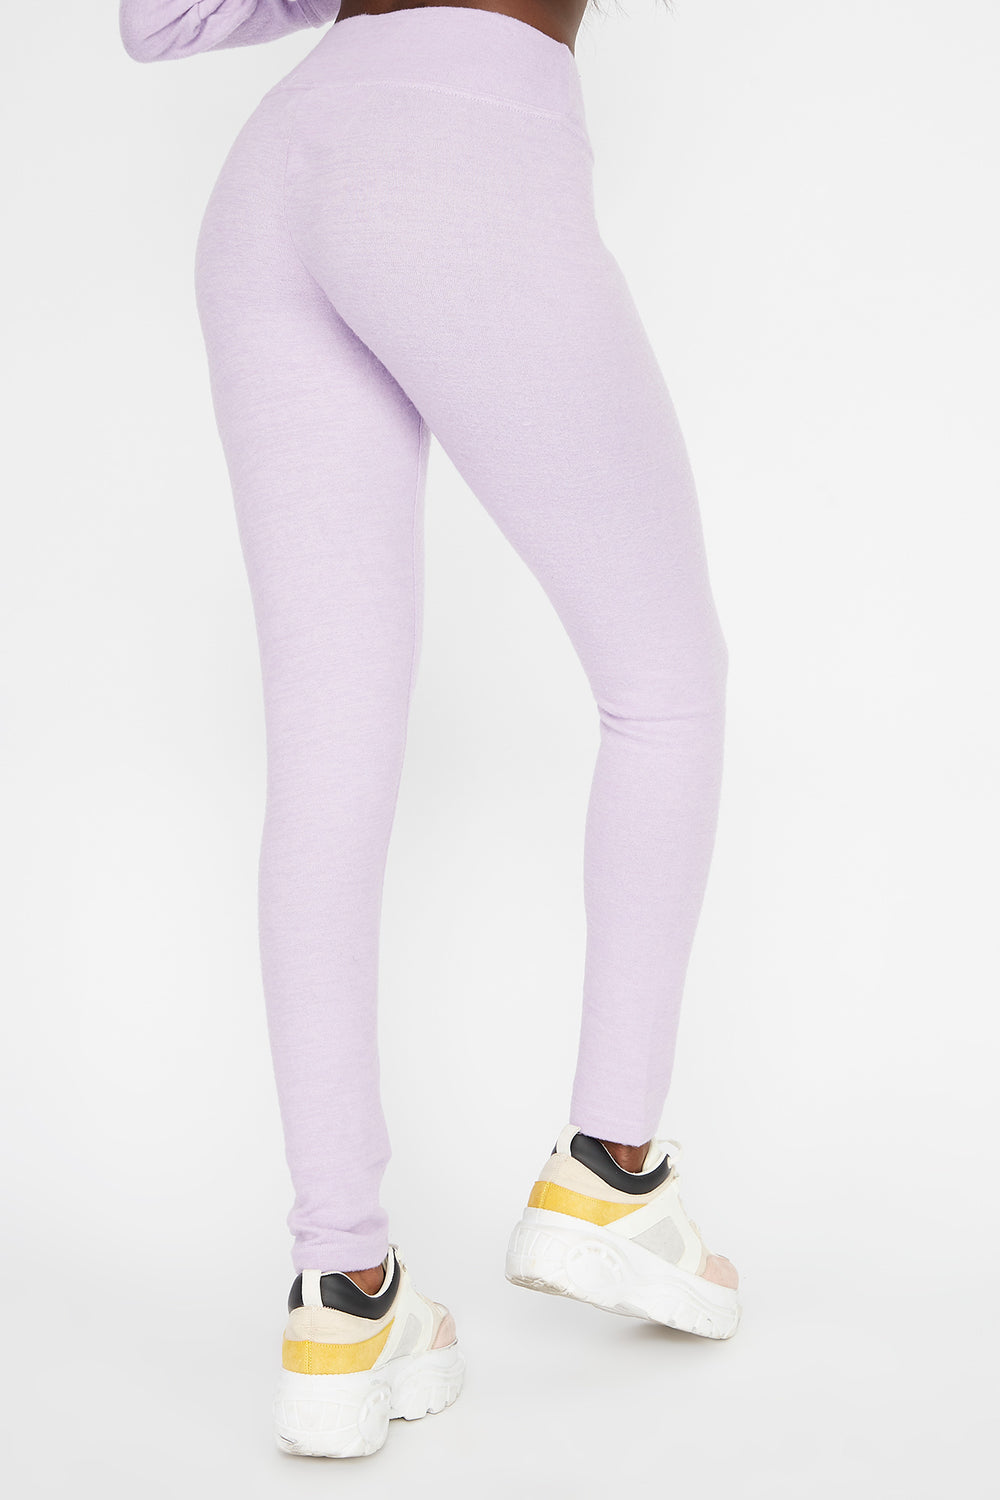 Leggings Cepillados de Cintura Autoajustable Lila